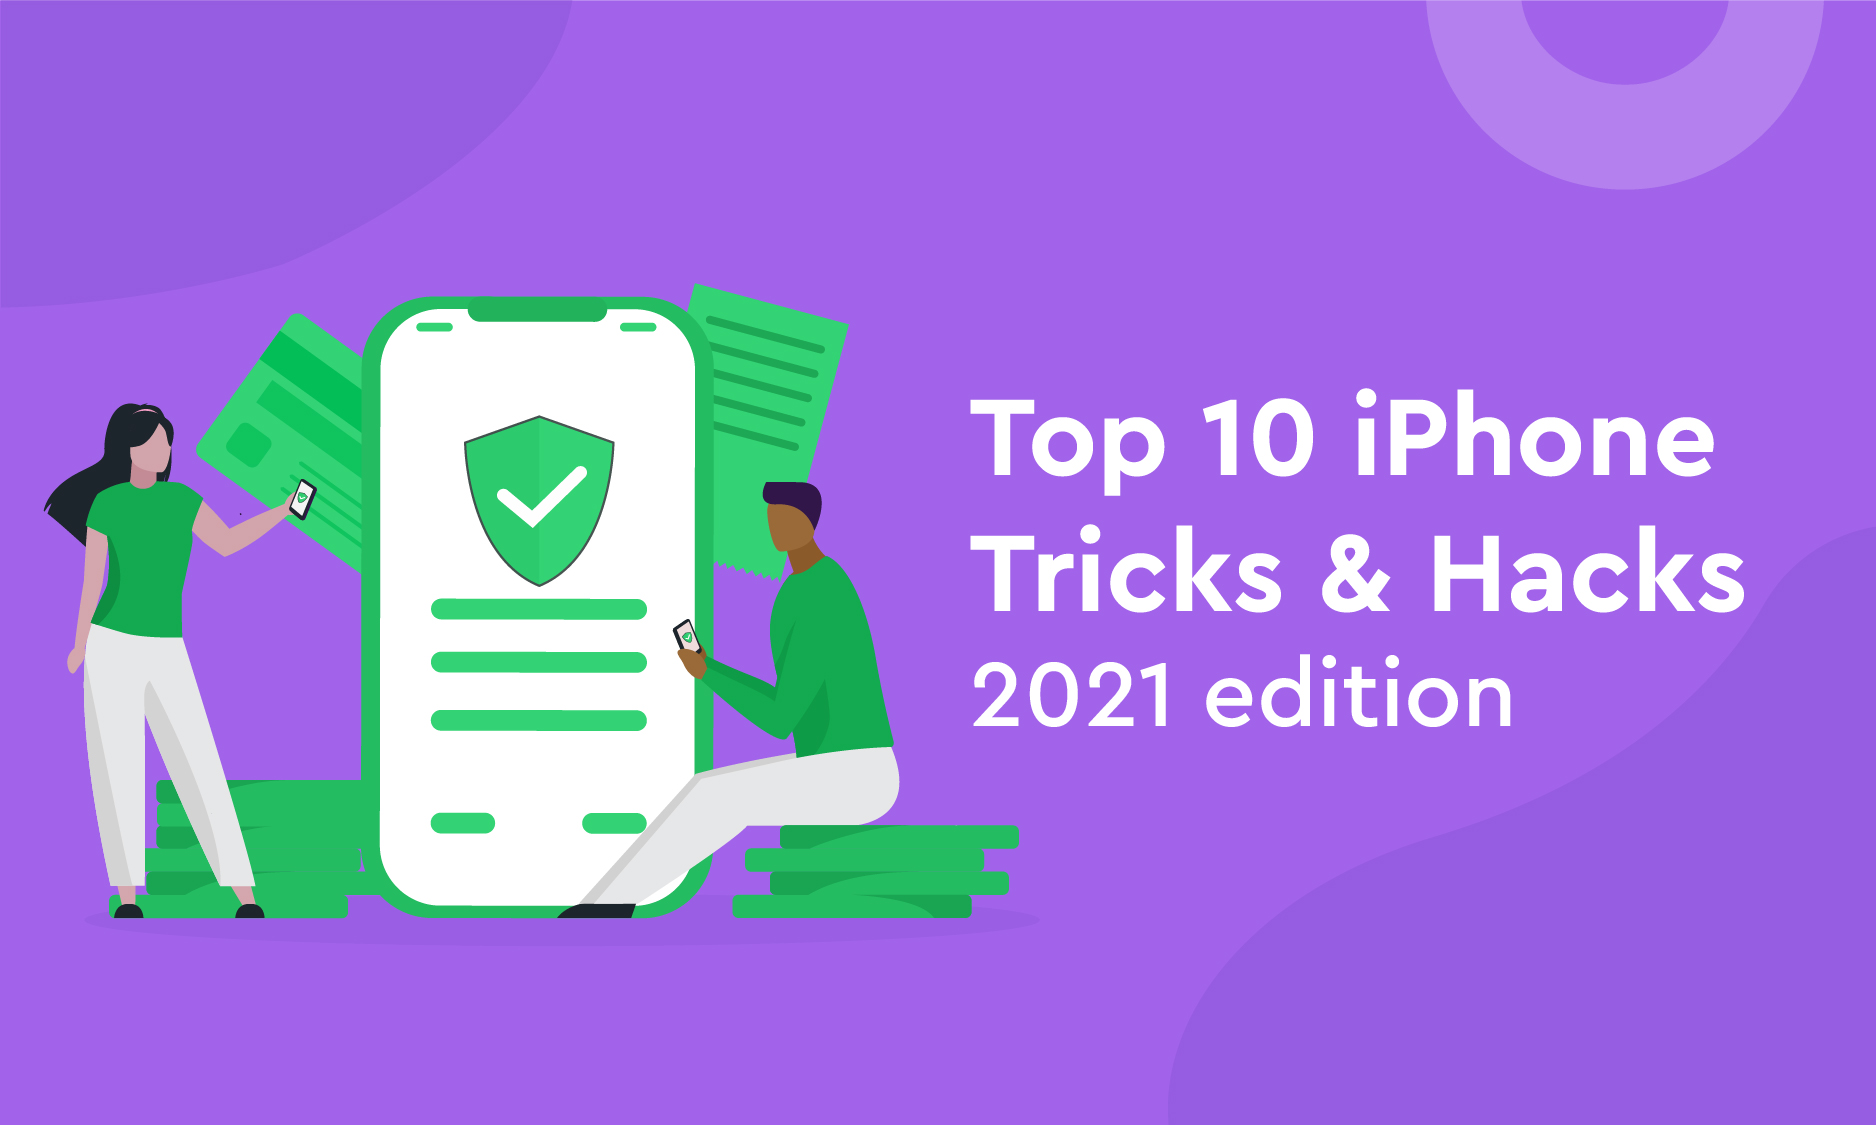 Top 10 iPhone Tricks & Hacks - 2021 edition